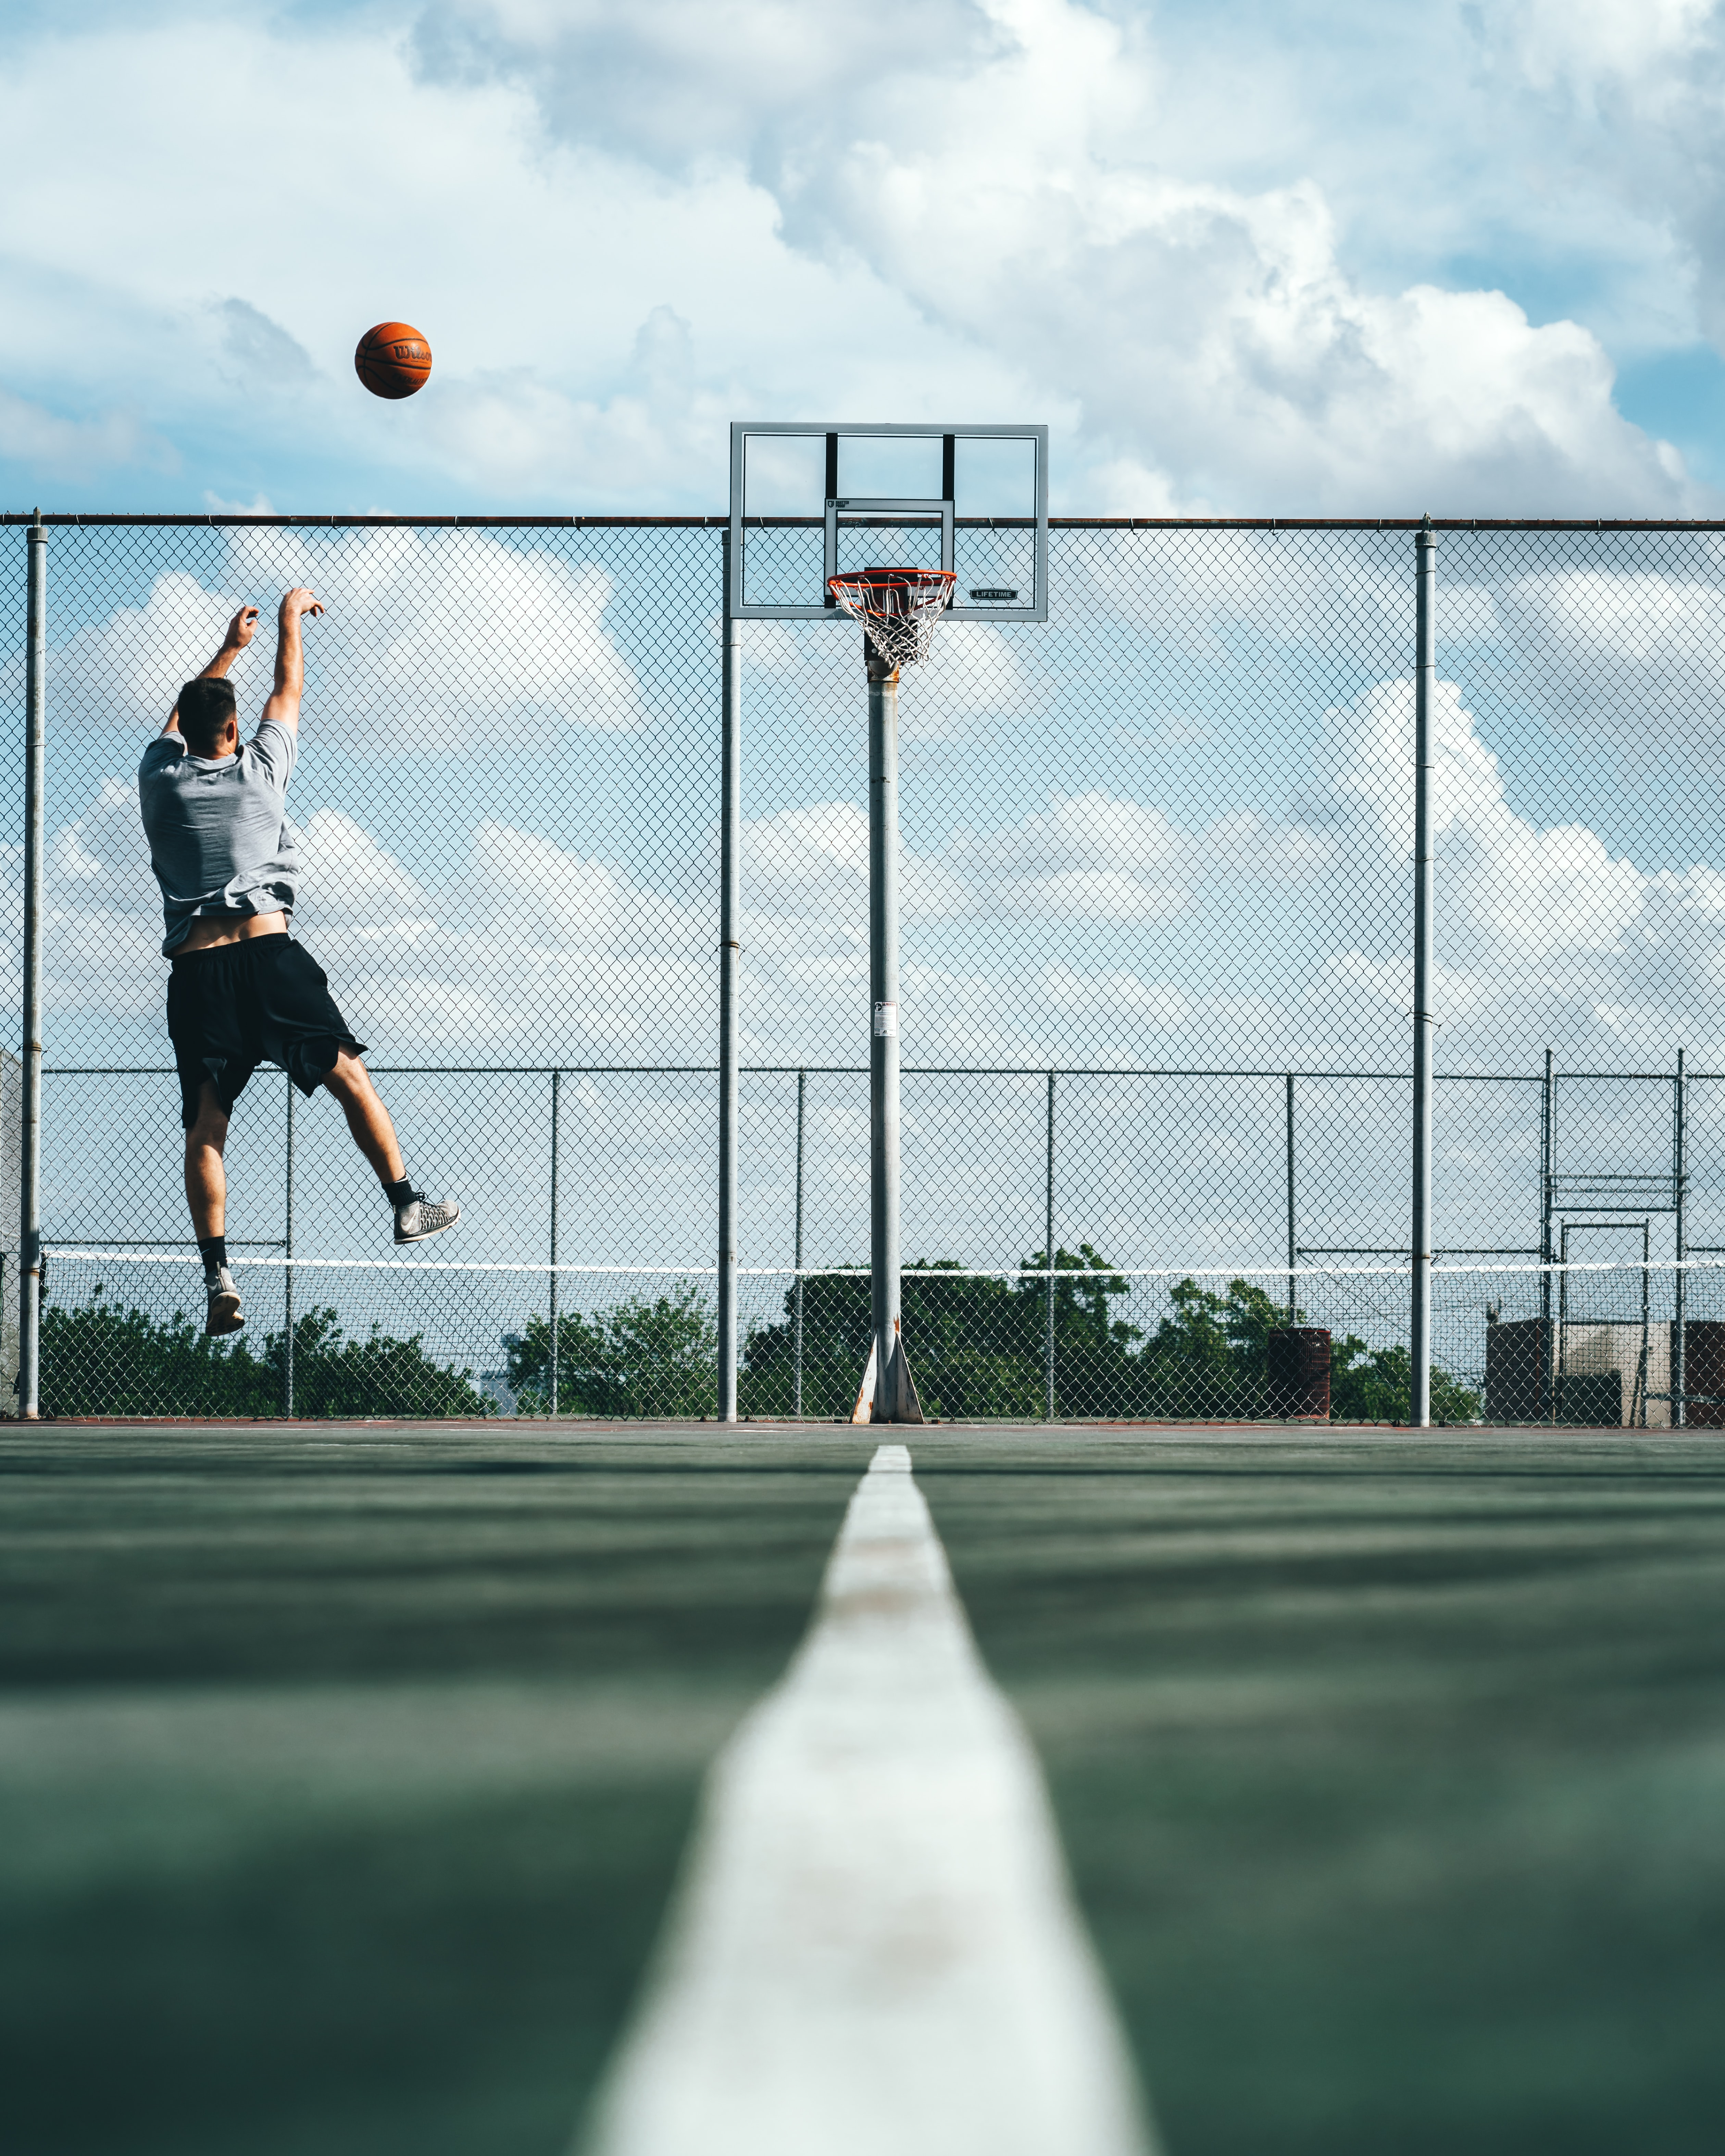 man shooting ball on basketball hoop